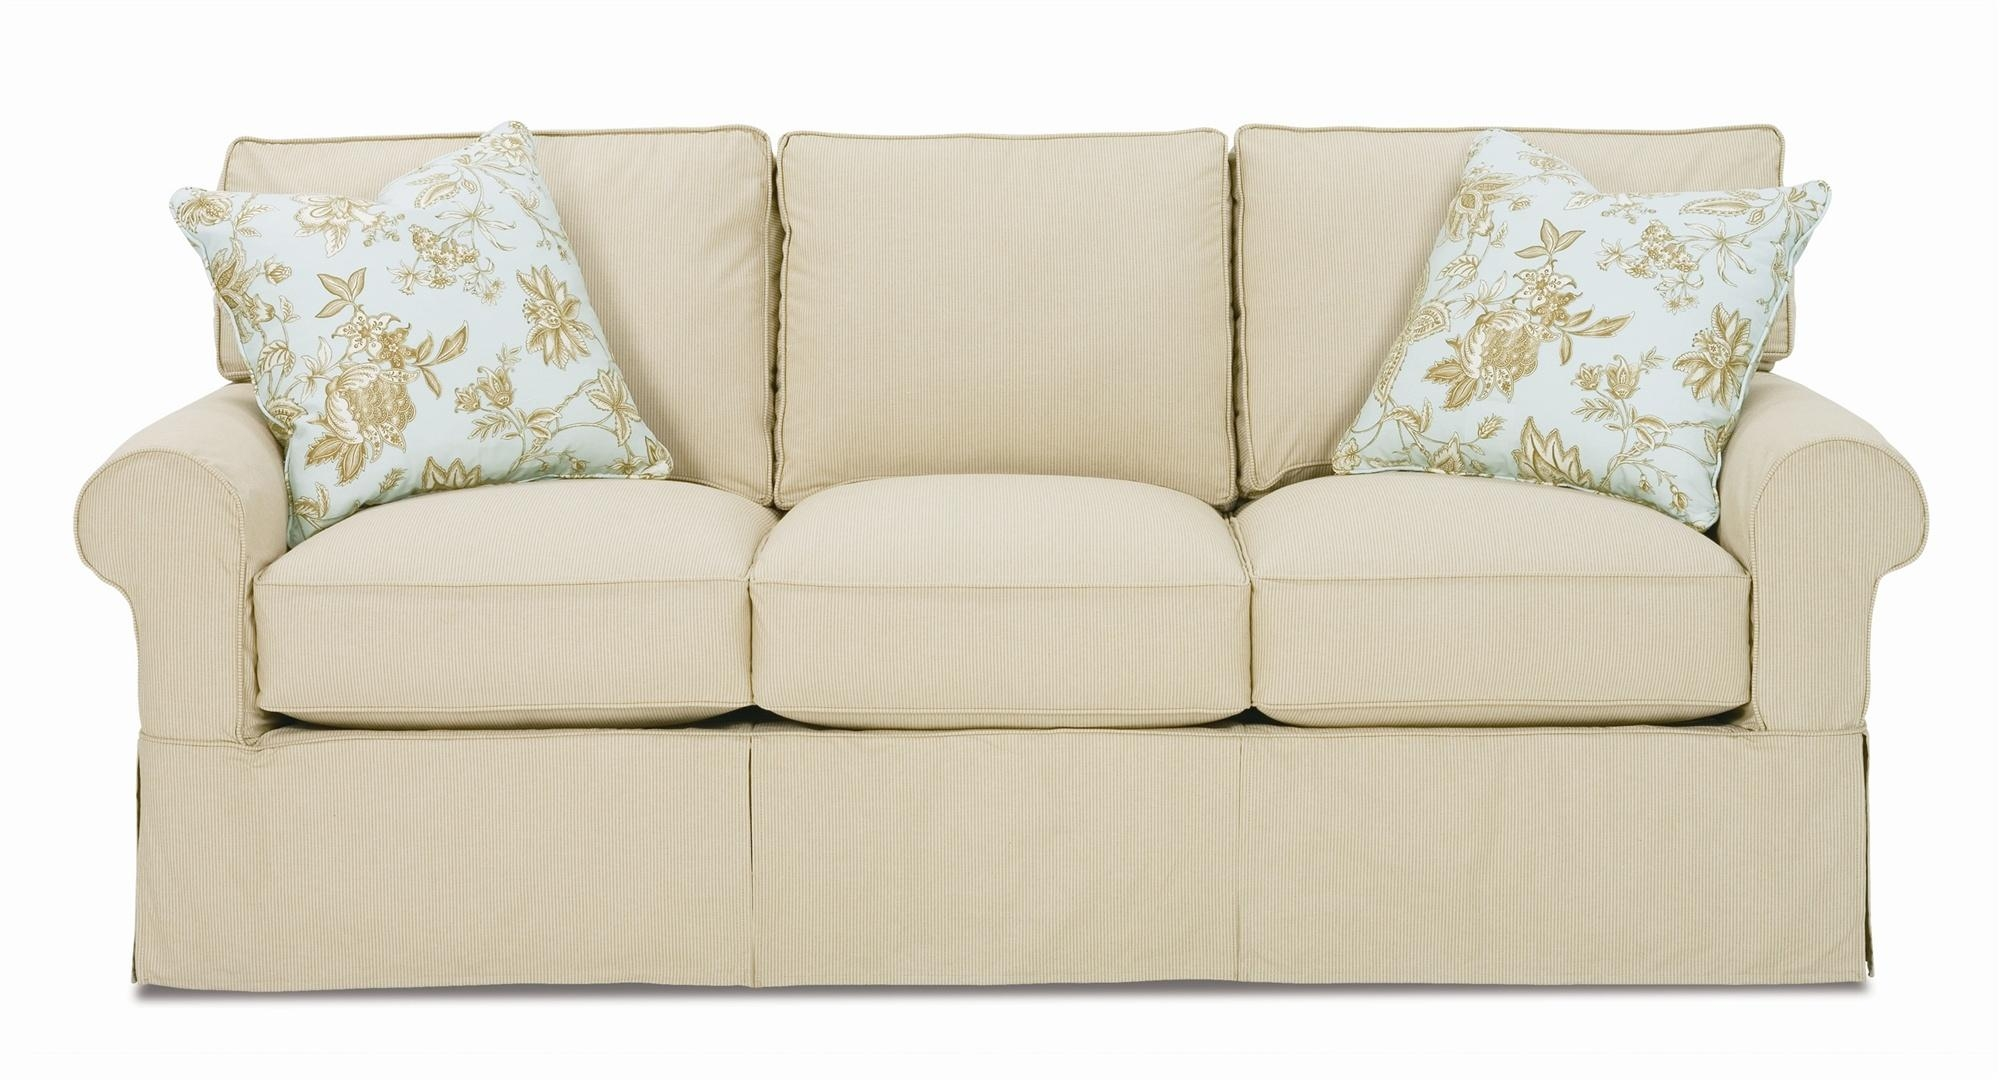 Quality Interiors | Sofa Slipcover | Chair Slipcovers For Slipcovers Sofas (Image 15 of 20)